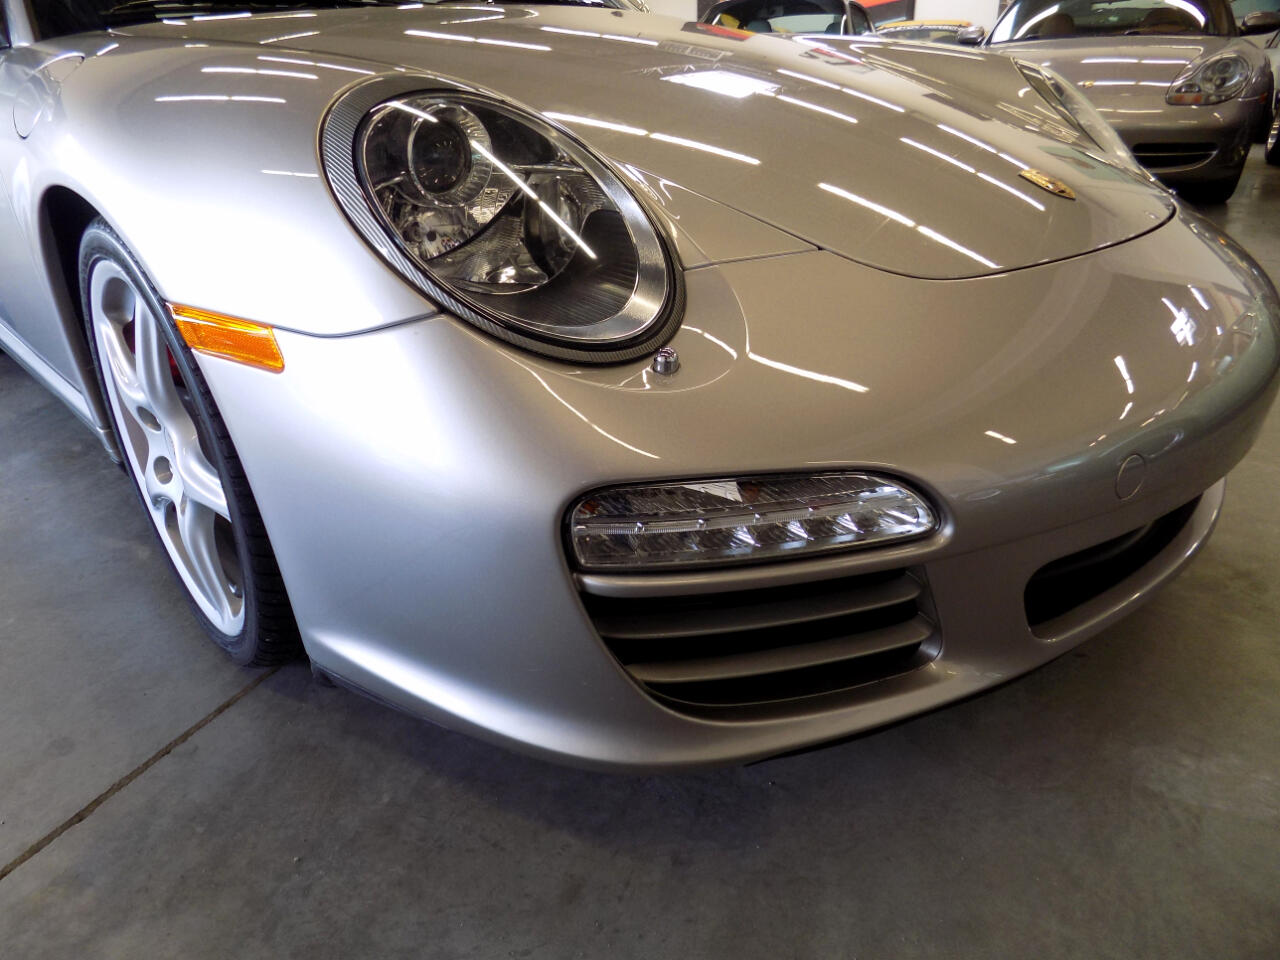 2011 Porsche 911 Carrera 4S Coupe